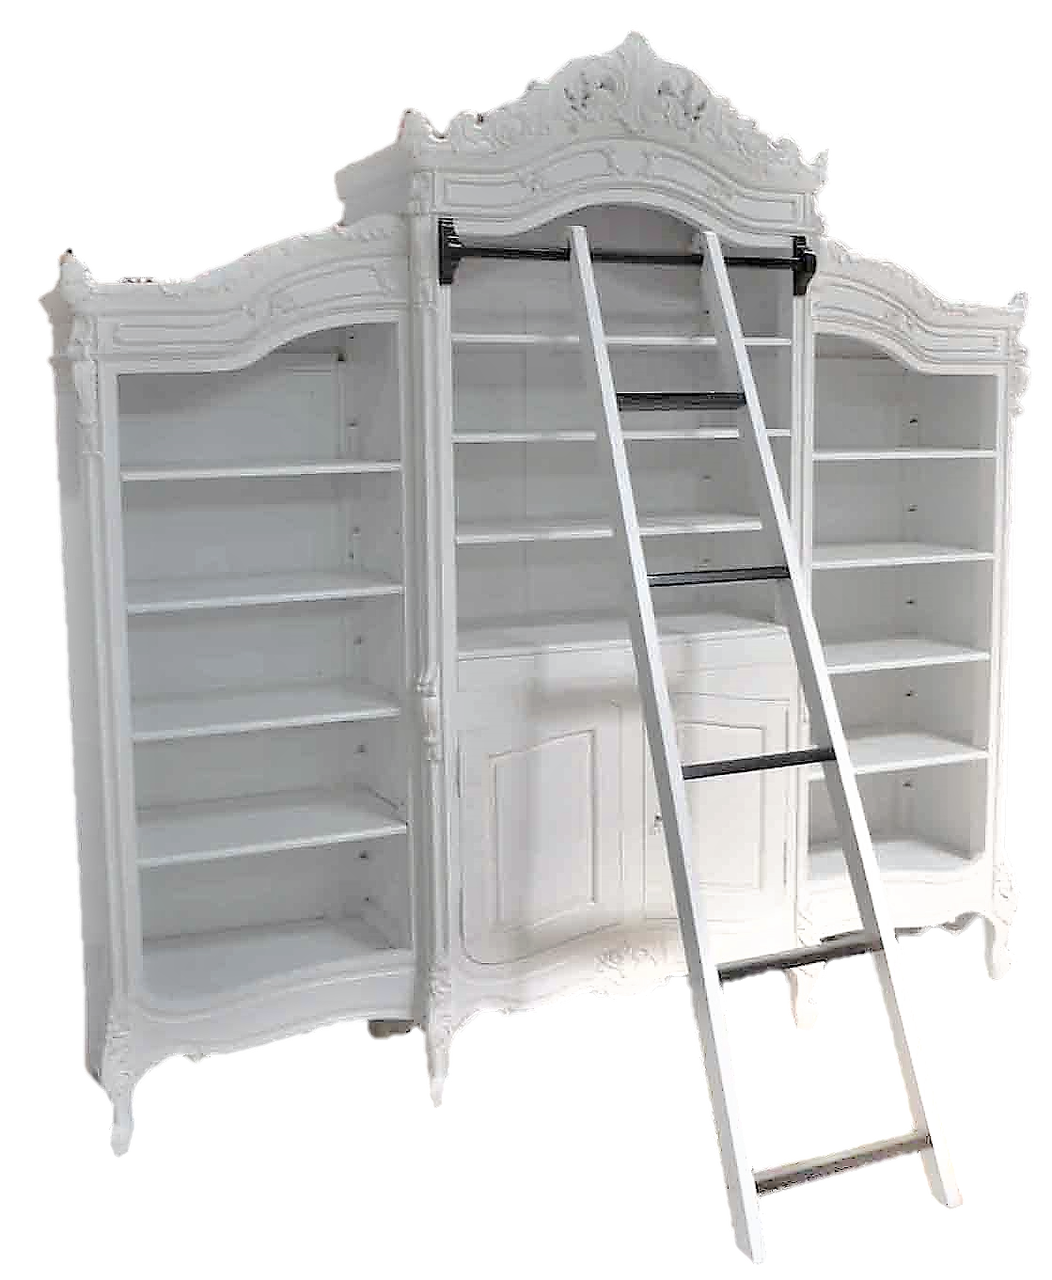 #5F5851 PRE ORDER: Library Cabinet Triple White La Maison Boutique with 1052x1280 px of Recommended Glass Display Cabinets Auckland 12801052 save image @ avoidforclosure.info